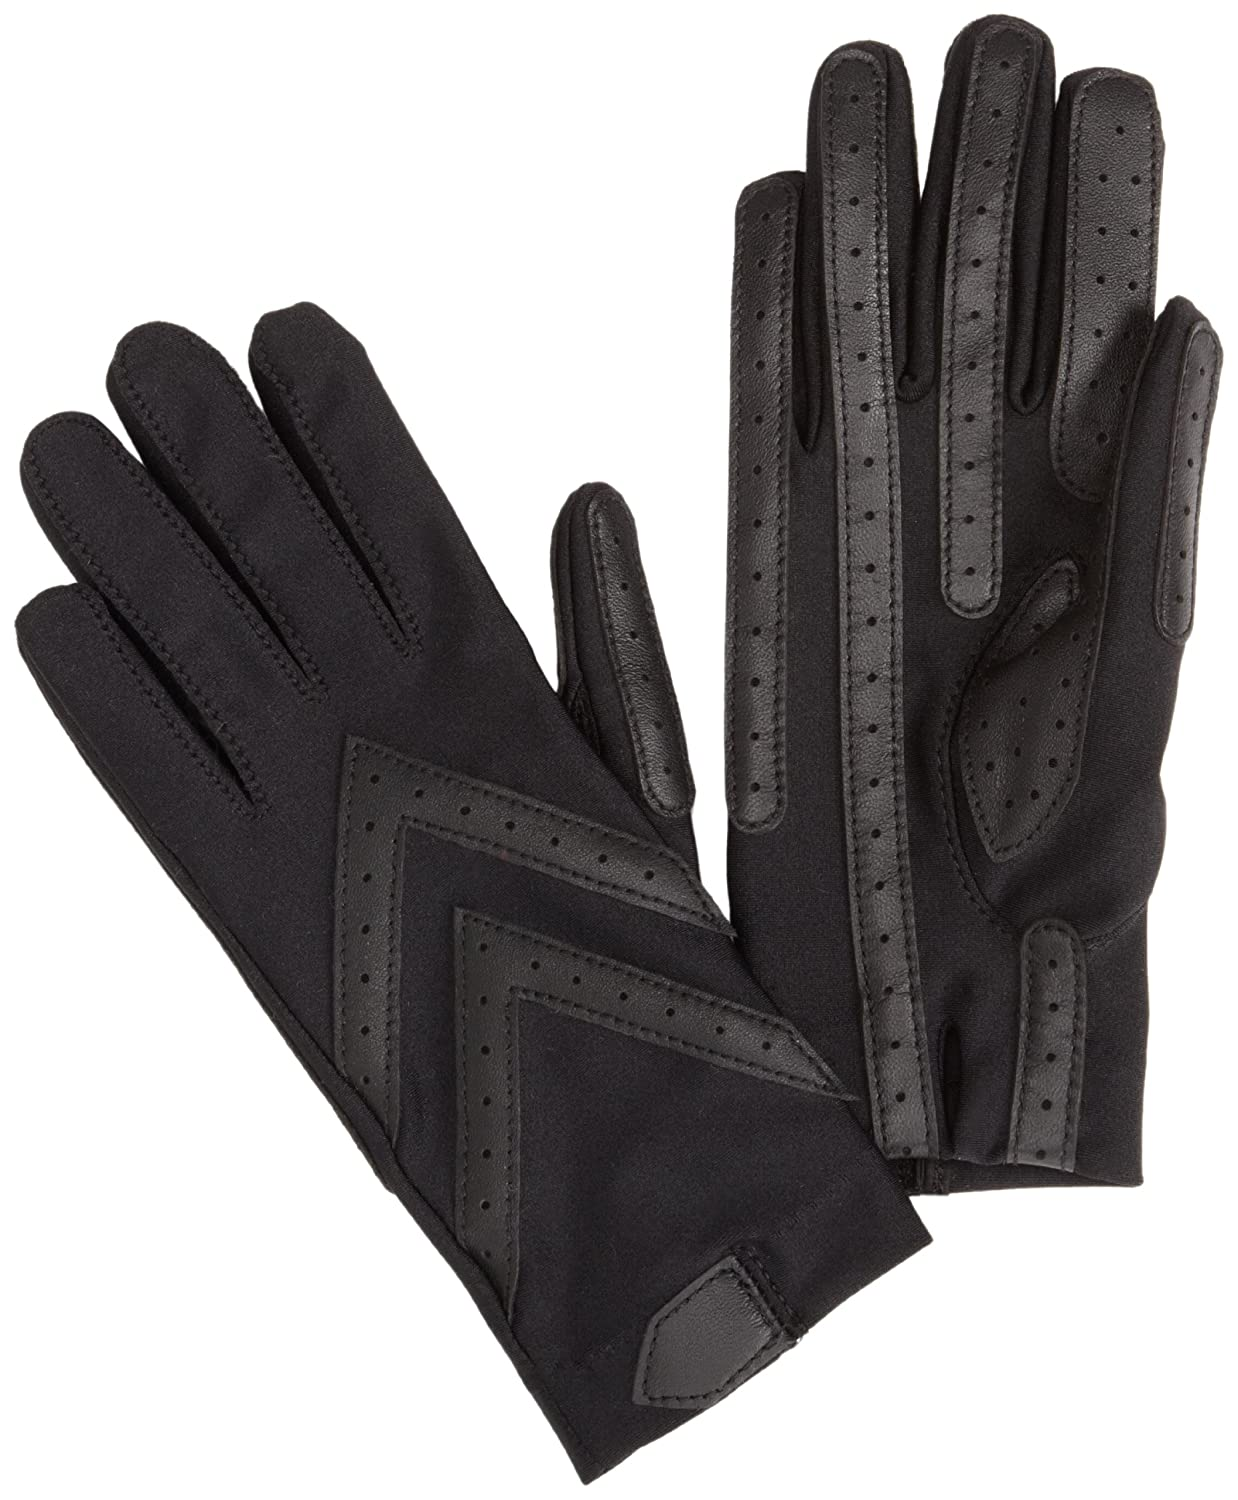 Driving gloves isotoner - Isotoner Women S Spandex Shortie Unlined Glove Black X Large At Amazon Women S Clothing Store Cold Weather Gloves